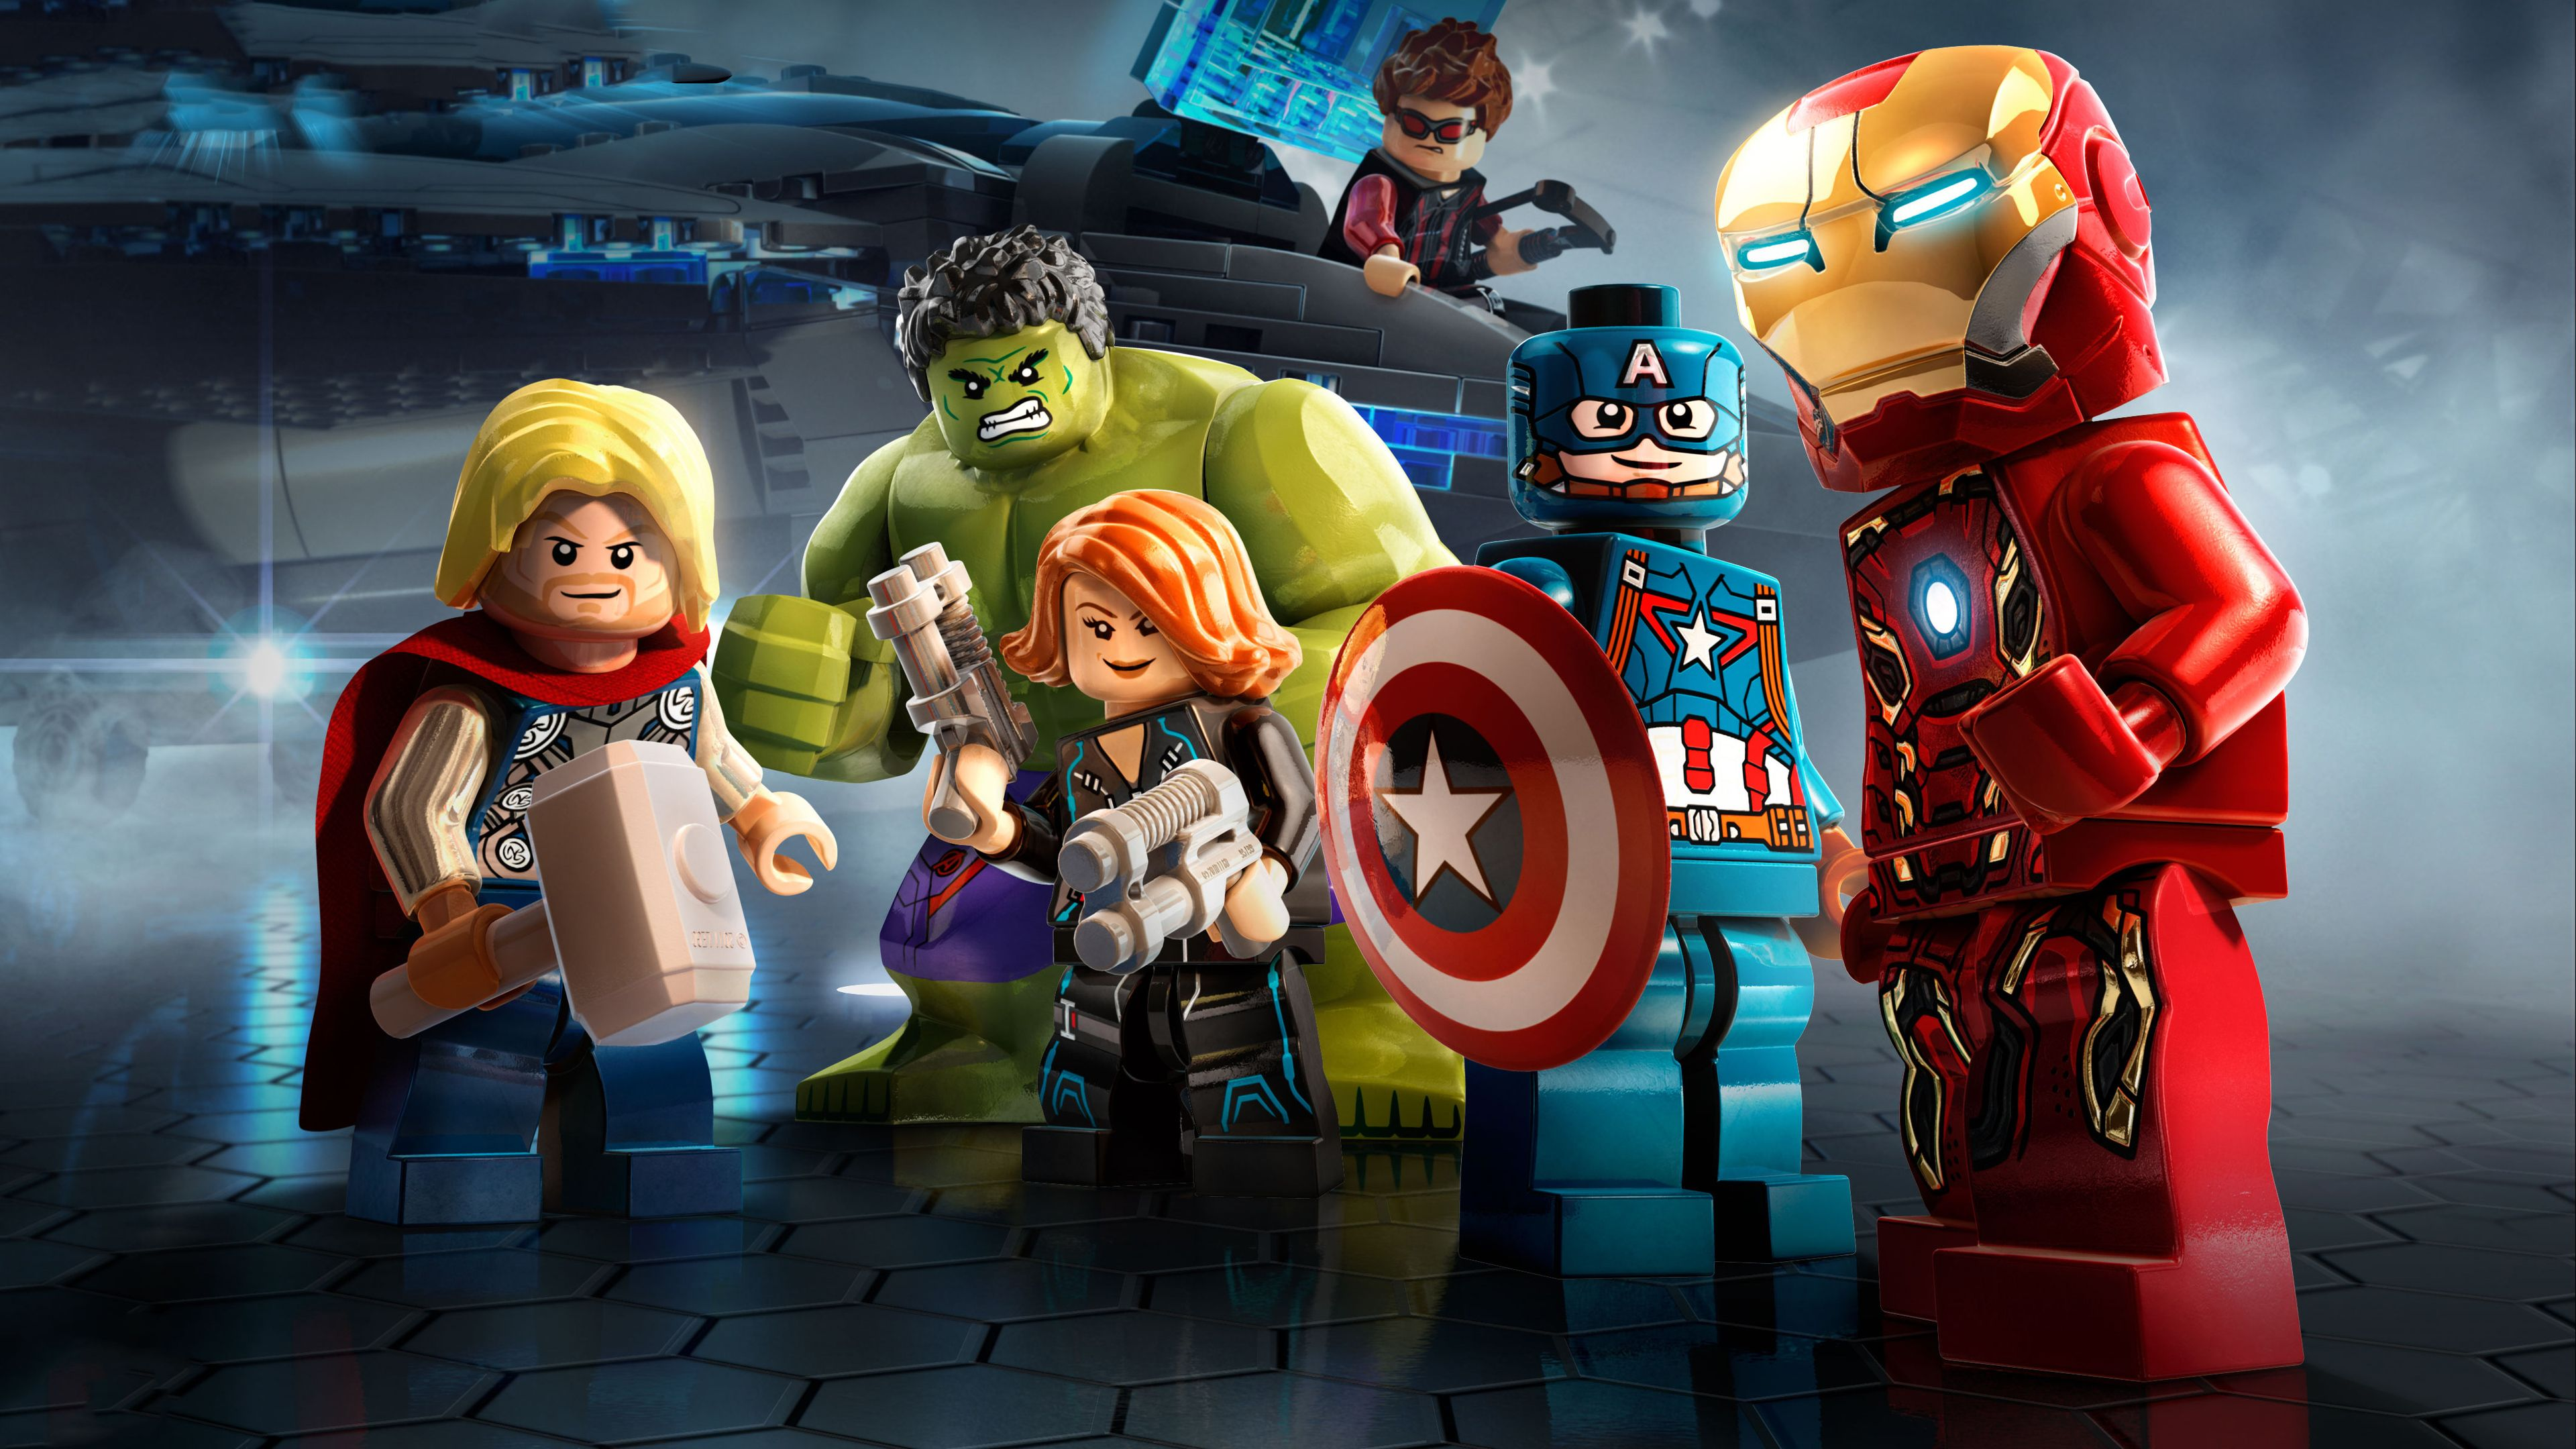 Marvel Avengers Lego 4k Superheroes Wallpapers Lego Wallpapers Hd Wallpapers Avengers Wallpapers 4k Wallpapers Lego Wallpaper Avengers Pictures Lego Marvel